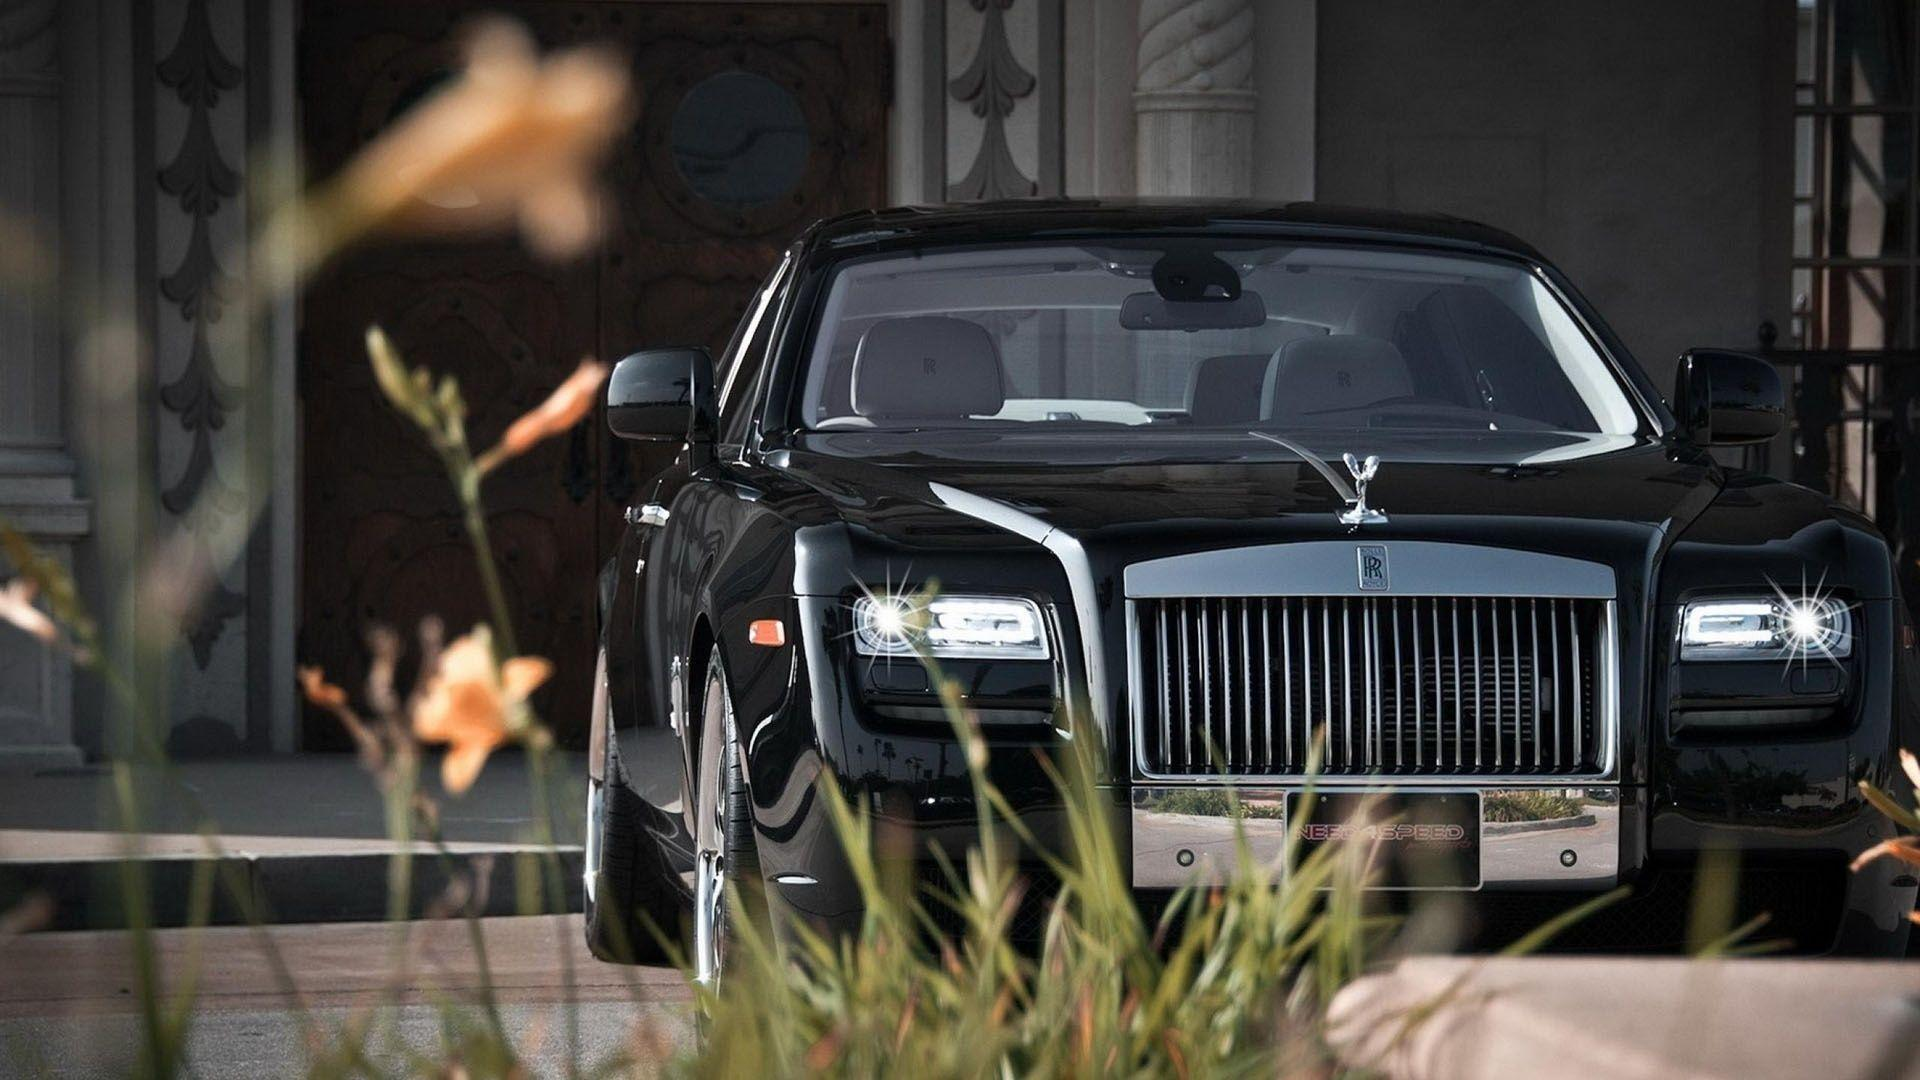 rolls royce ghost Full HD Wallpaper and Background Image | 1920x1080 ...